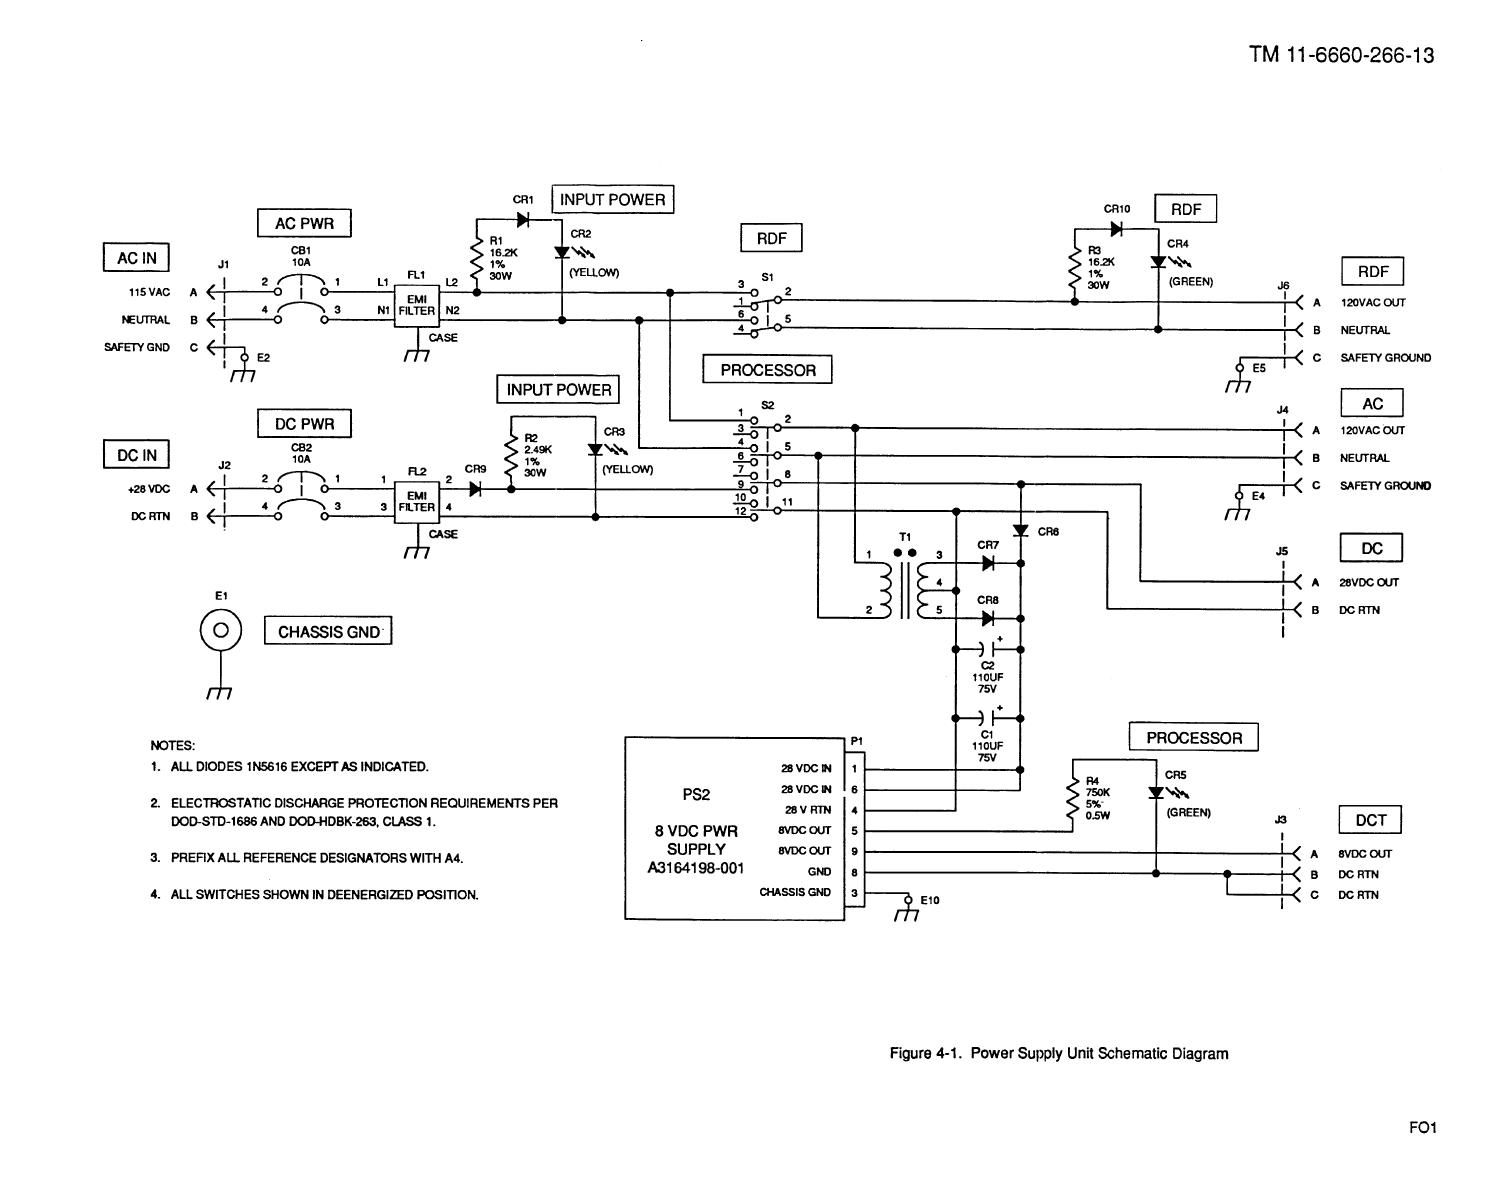 Figure 4 1 Power Supply Unit Schematic Diagram Circuit Of Previous Page